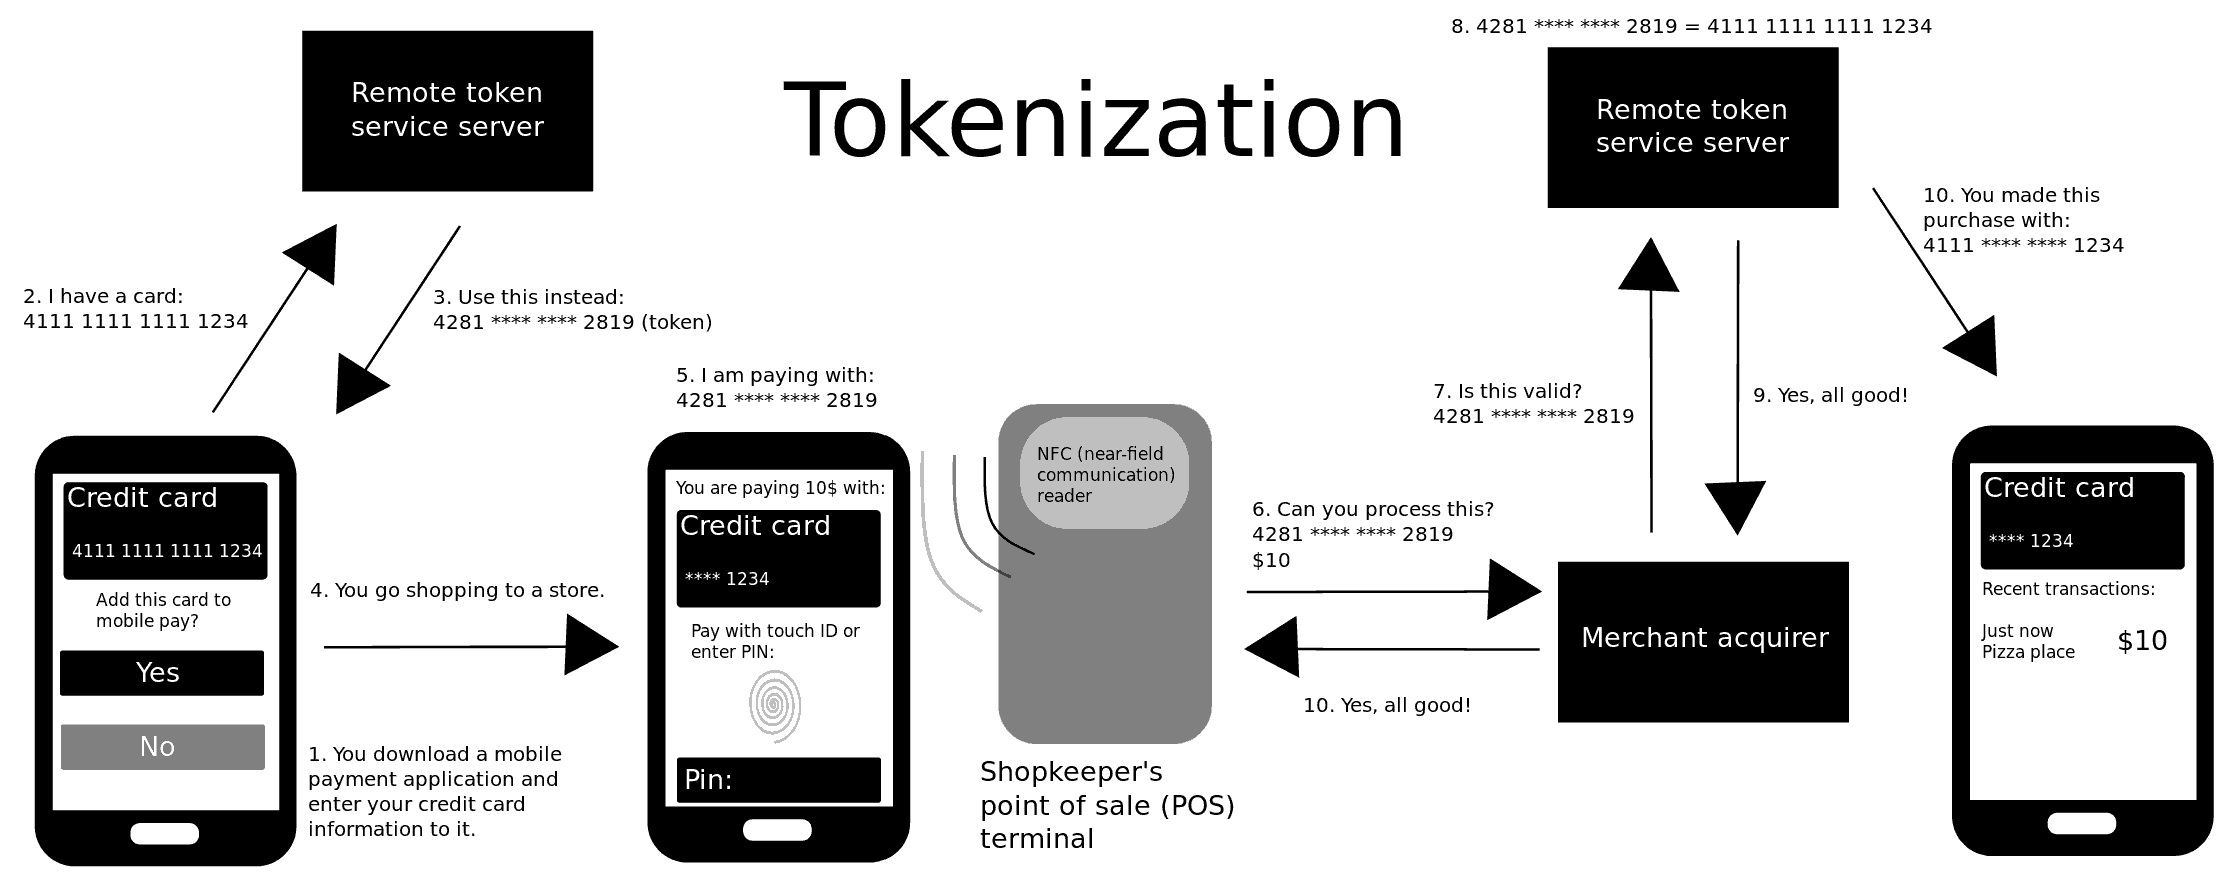 tokenization, a capability behind secured mobile payment secure payments company 5 secured payment #3